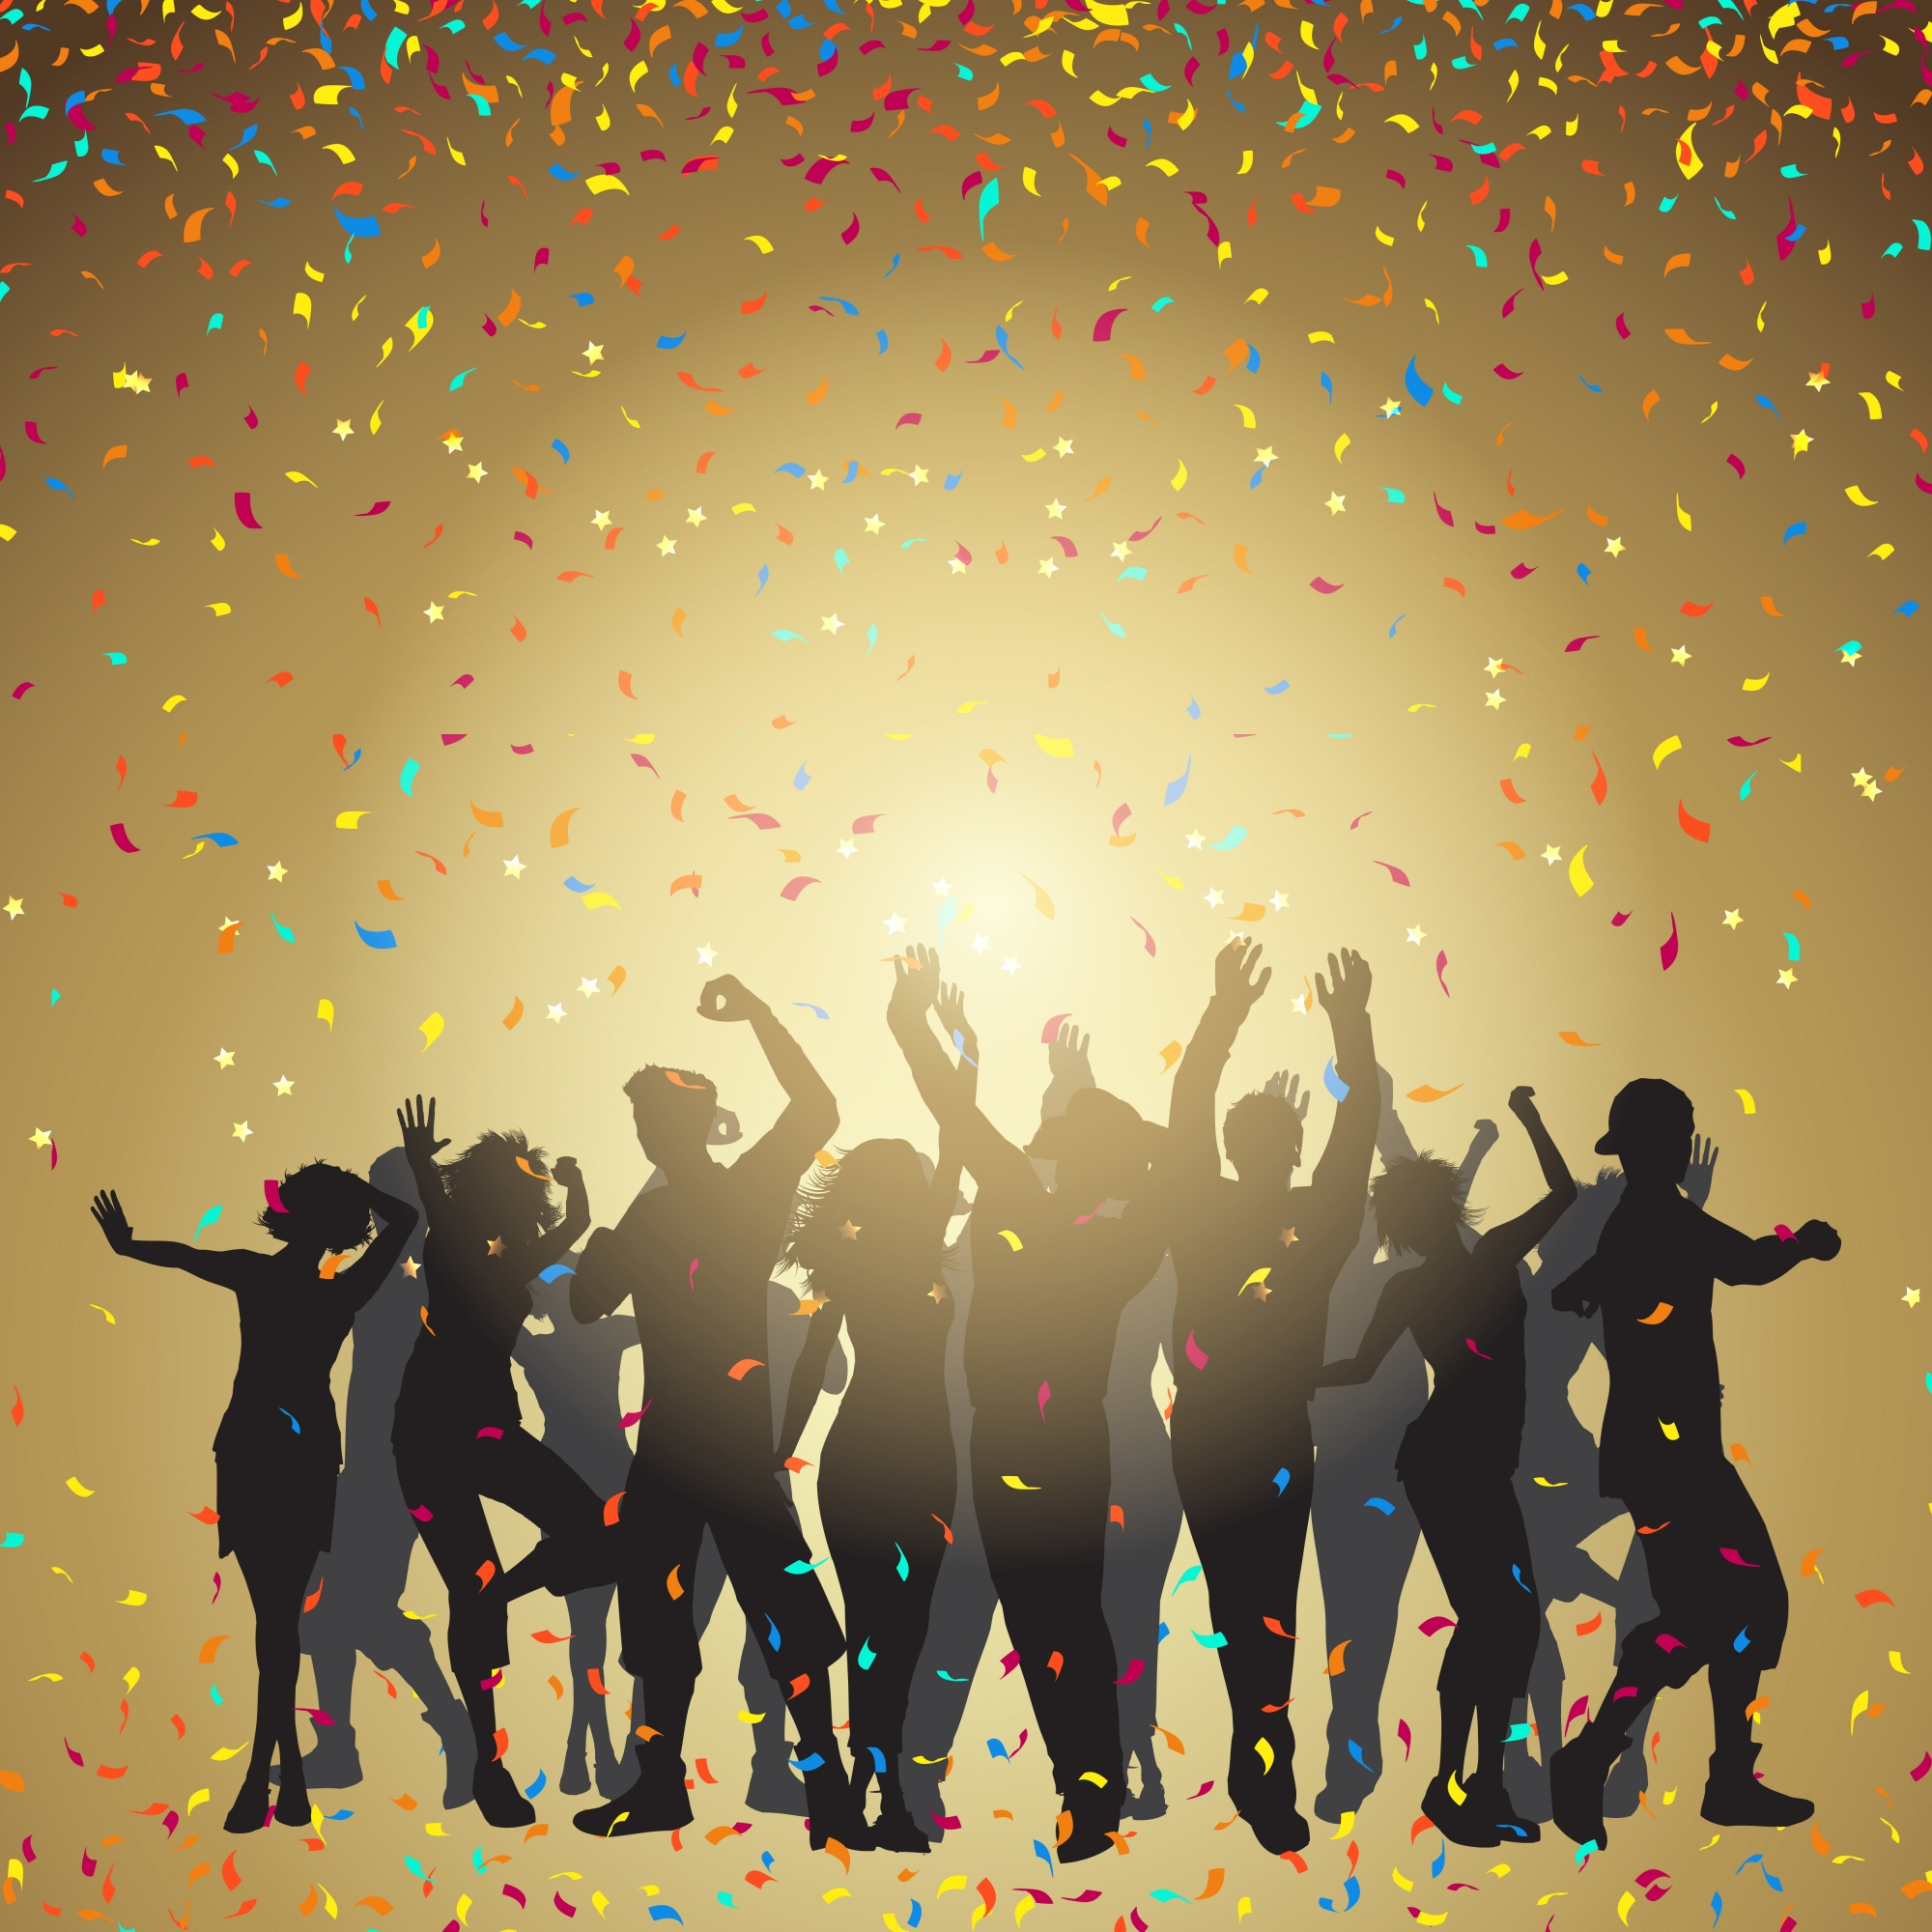 Silhouettes of people dancing on a confetti background